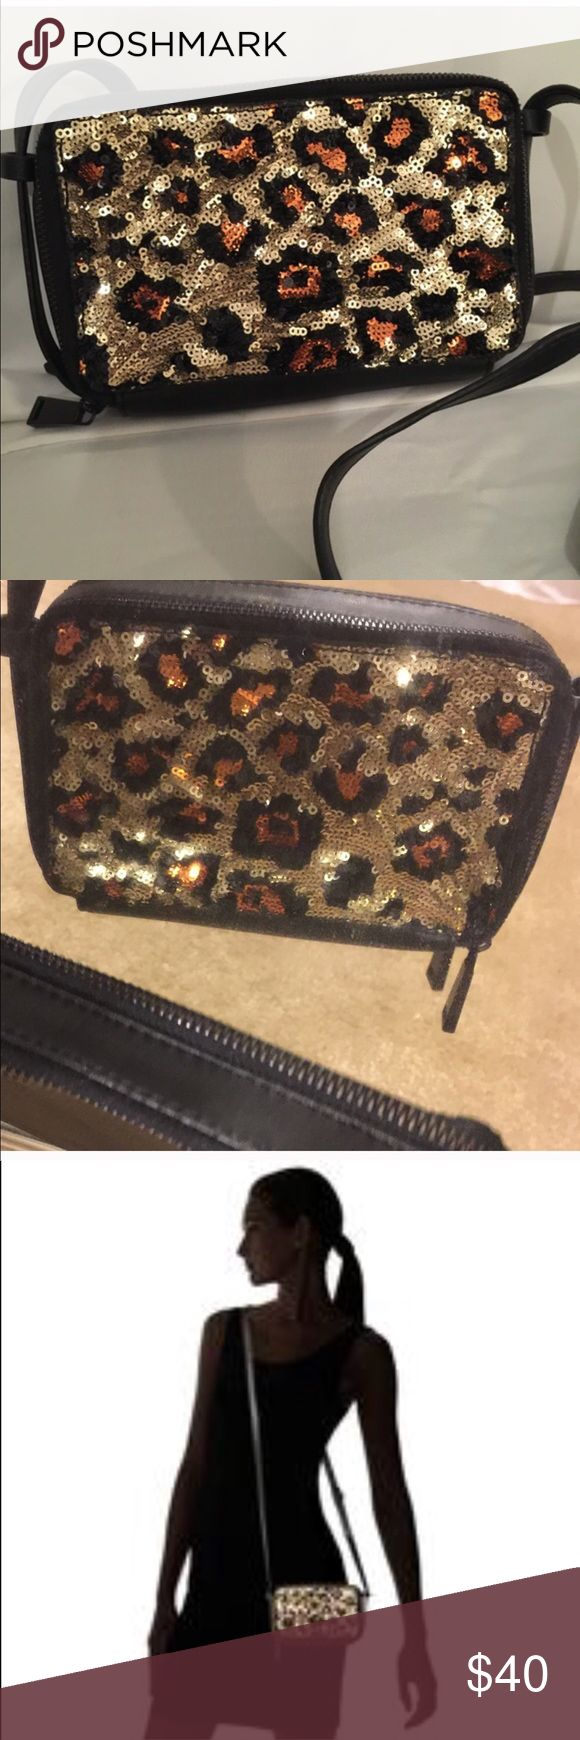 New French Connection Sequin Purse Glamorous Cross Body made by French Connection. Leopard sequin on the front. A bag that sparkles.  Zip closure. Adjustable body strap. 2 interior pockets. 10 credit card holders. French Connection logo on the back. 6WX 1 3/4DX4H✅Price firm ✅ French Connection Bags